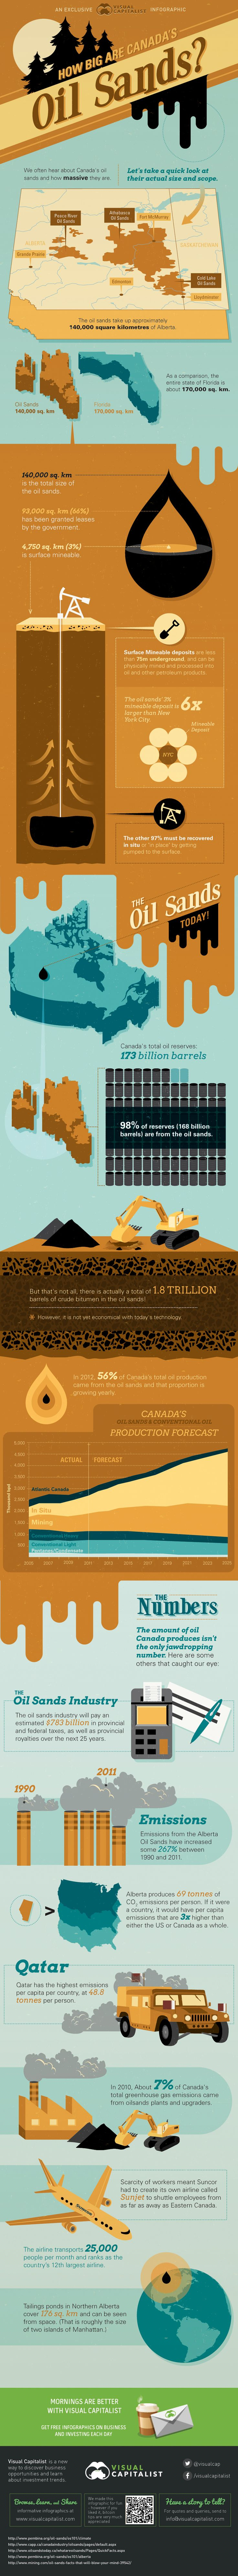 Infographic: How Big Are Canada's Oil Sands? An whole view of the Tar Sands Revolution